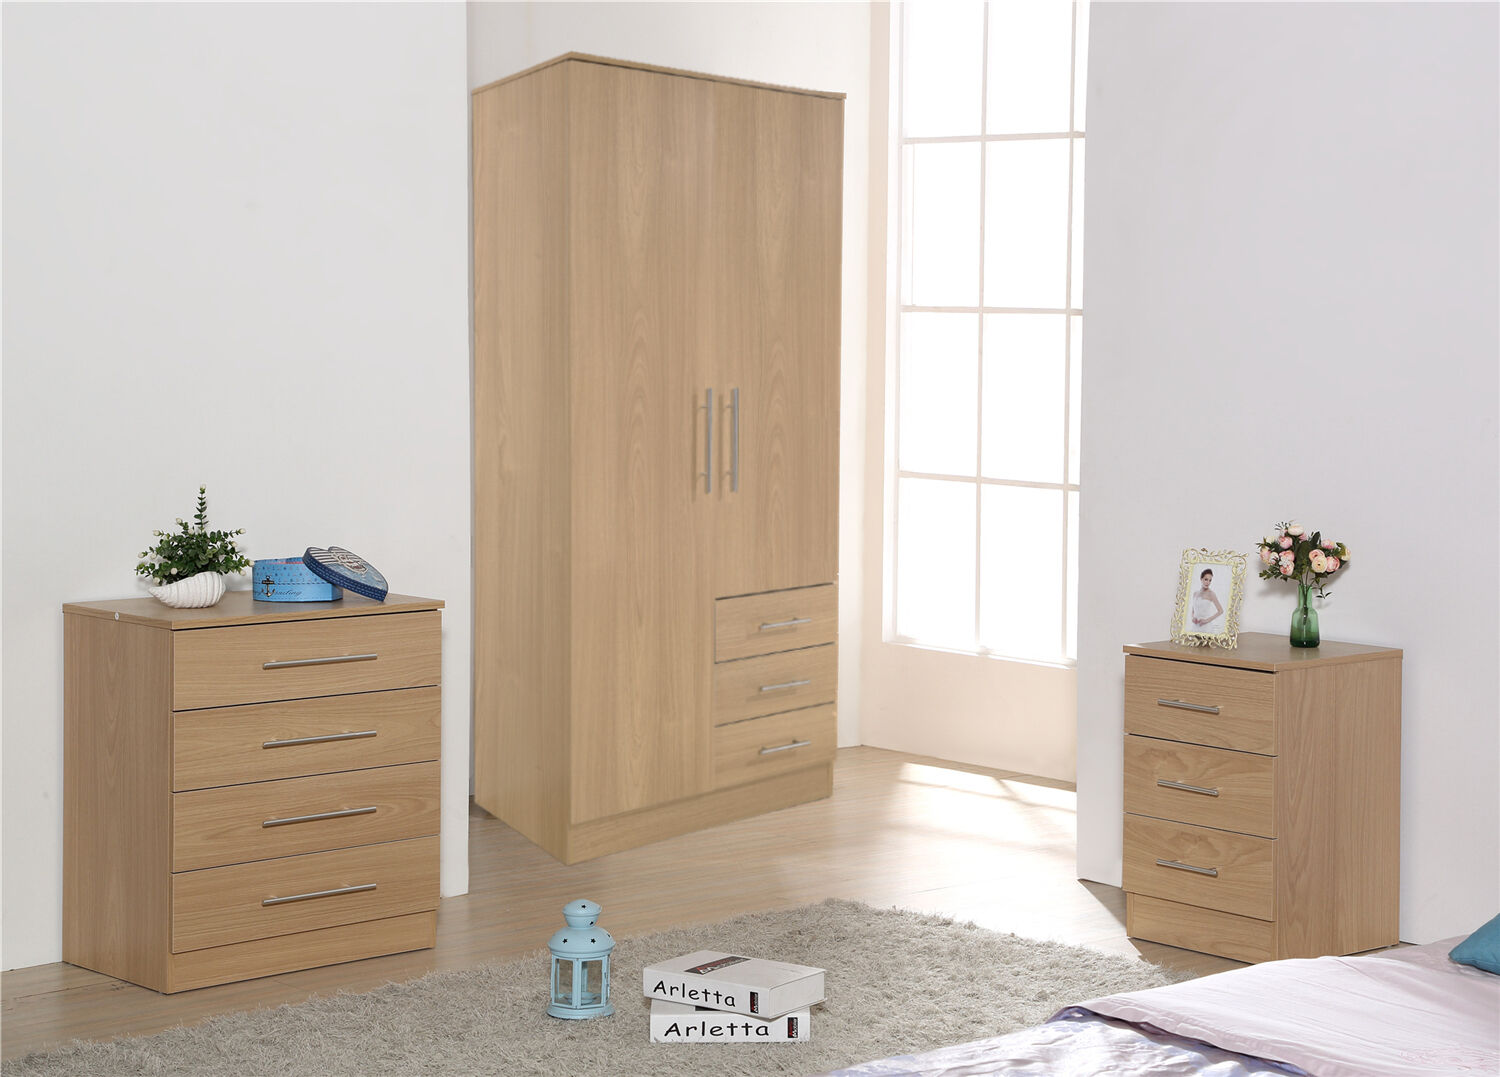 Stylish oak trio furniture soft close wardrobe chest of drawers bedside ebay for Bedroom furniture soft close drawers